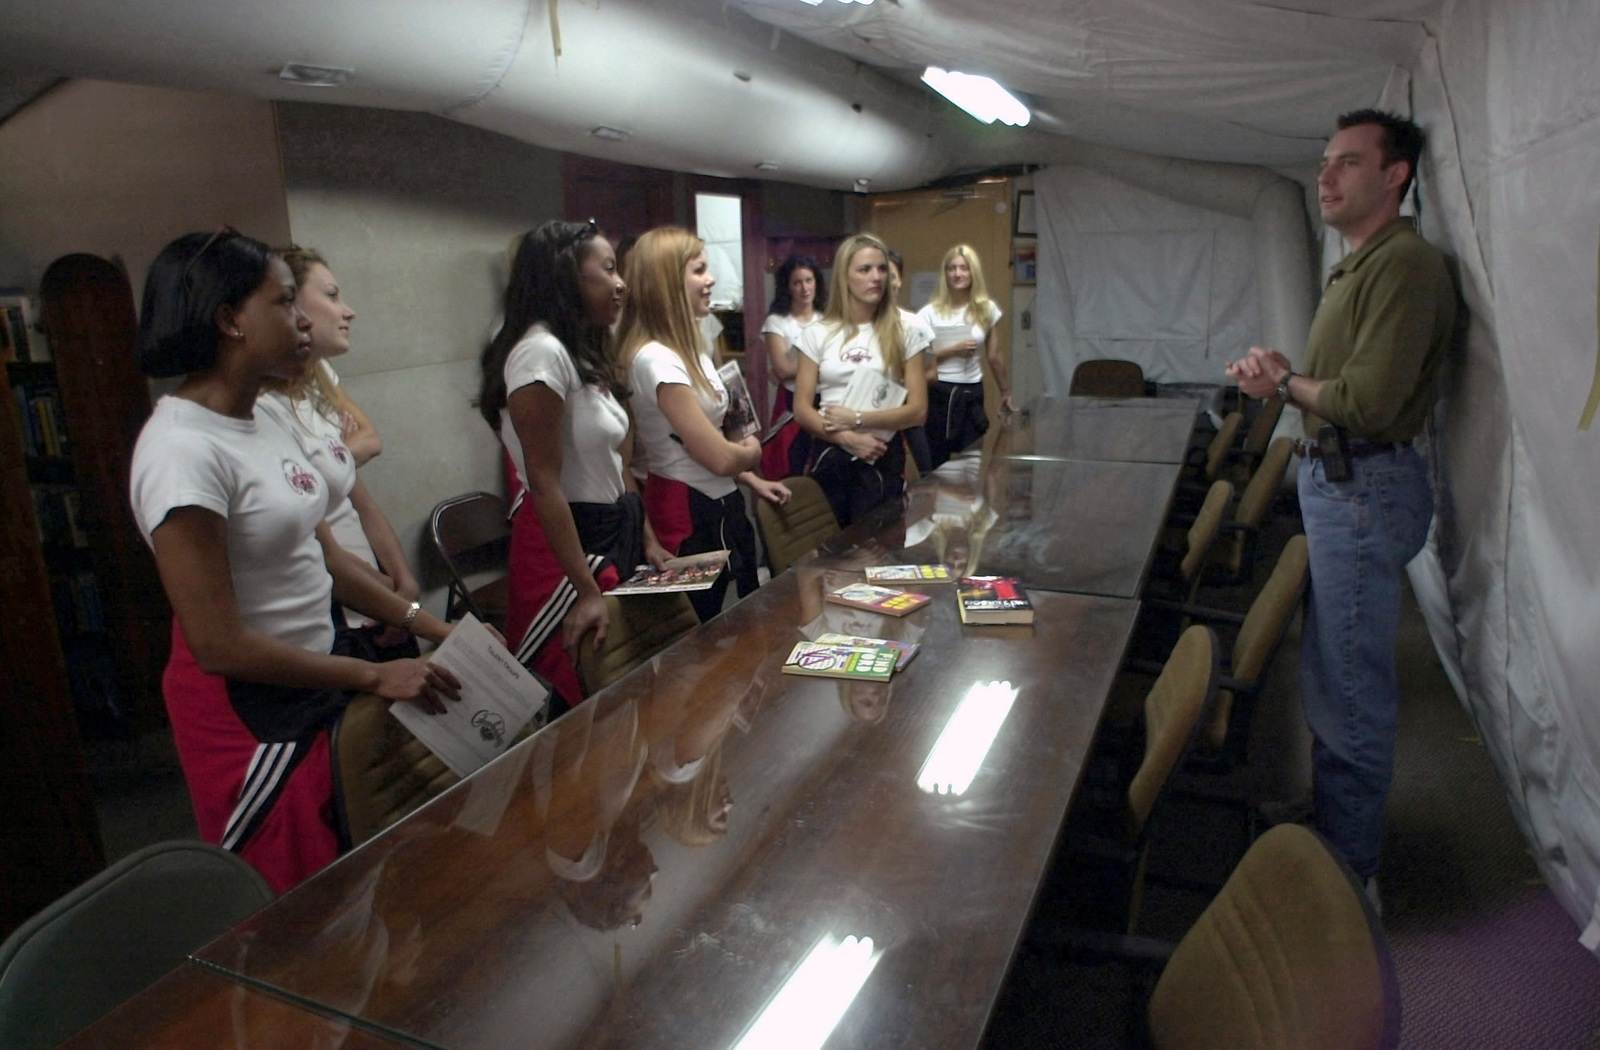 US Air Force (USAF) Captain (CPT) Shawn Campbell (right), Services CHIEF for Operation NORTHER WATCH, briefs members of the National Football League (NFL), Tampa Bay Buccaneers, Cheerleading Squad, during a tour of the facilities at Incirlik Air Base (AB), Turkey. Members of the squad are visiting with deployed military personnel in support of Operation ENDURING FREEDOM